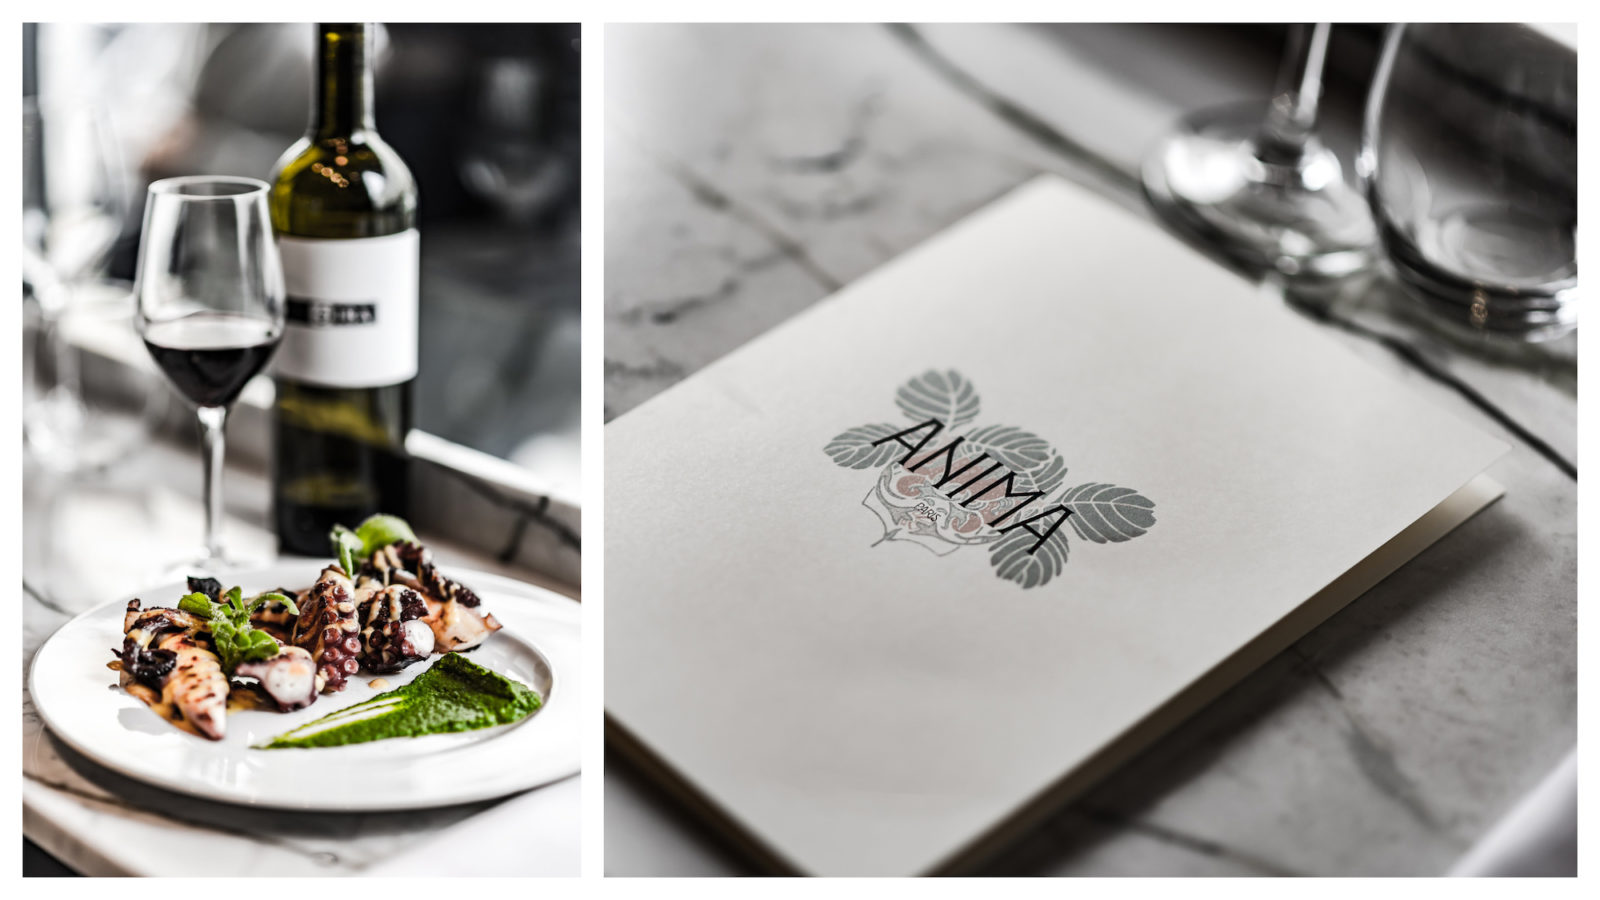 Tasty grilled octopus with a glass of wine at Anima restaurant in Paris on rue du Cherche-Midi (left). The beautifully hand-drawn menus at favorite Paris restaurant Anima in Paris (right).